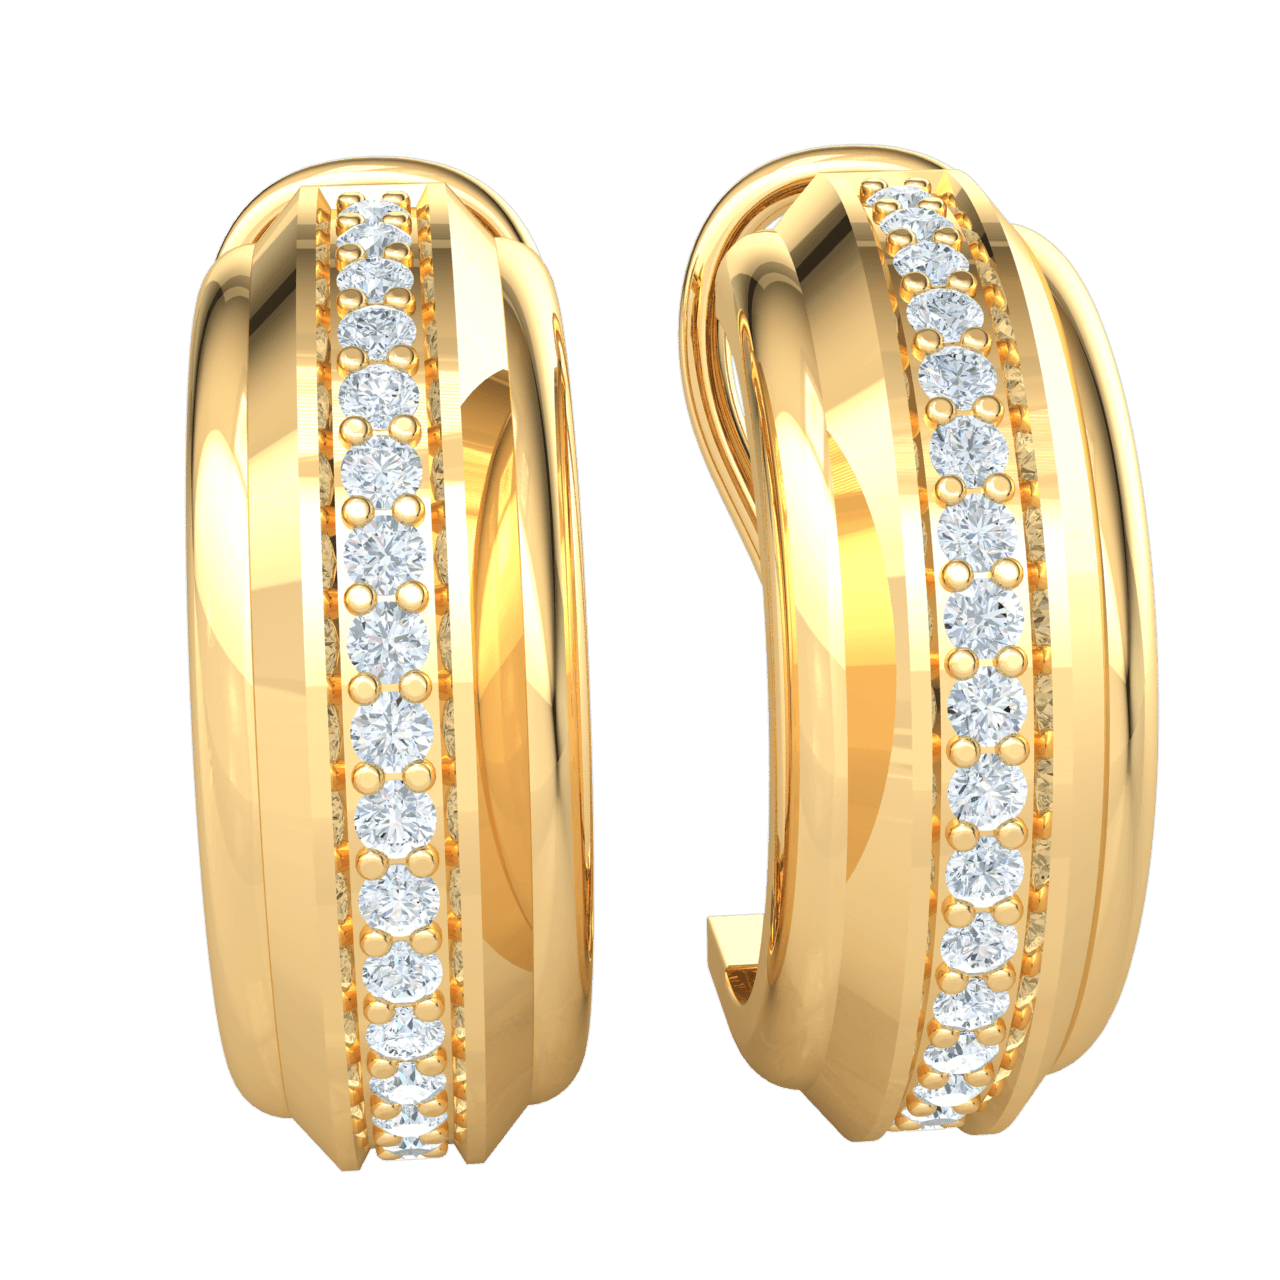 0.35 Ct JK I1 Classic And Timeless Circular Hoop Real Earrings With A Row Of Beautiful White Diamonds in 10 kt Gold